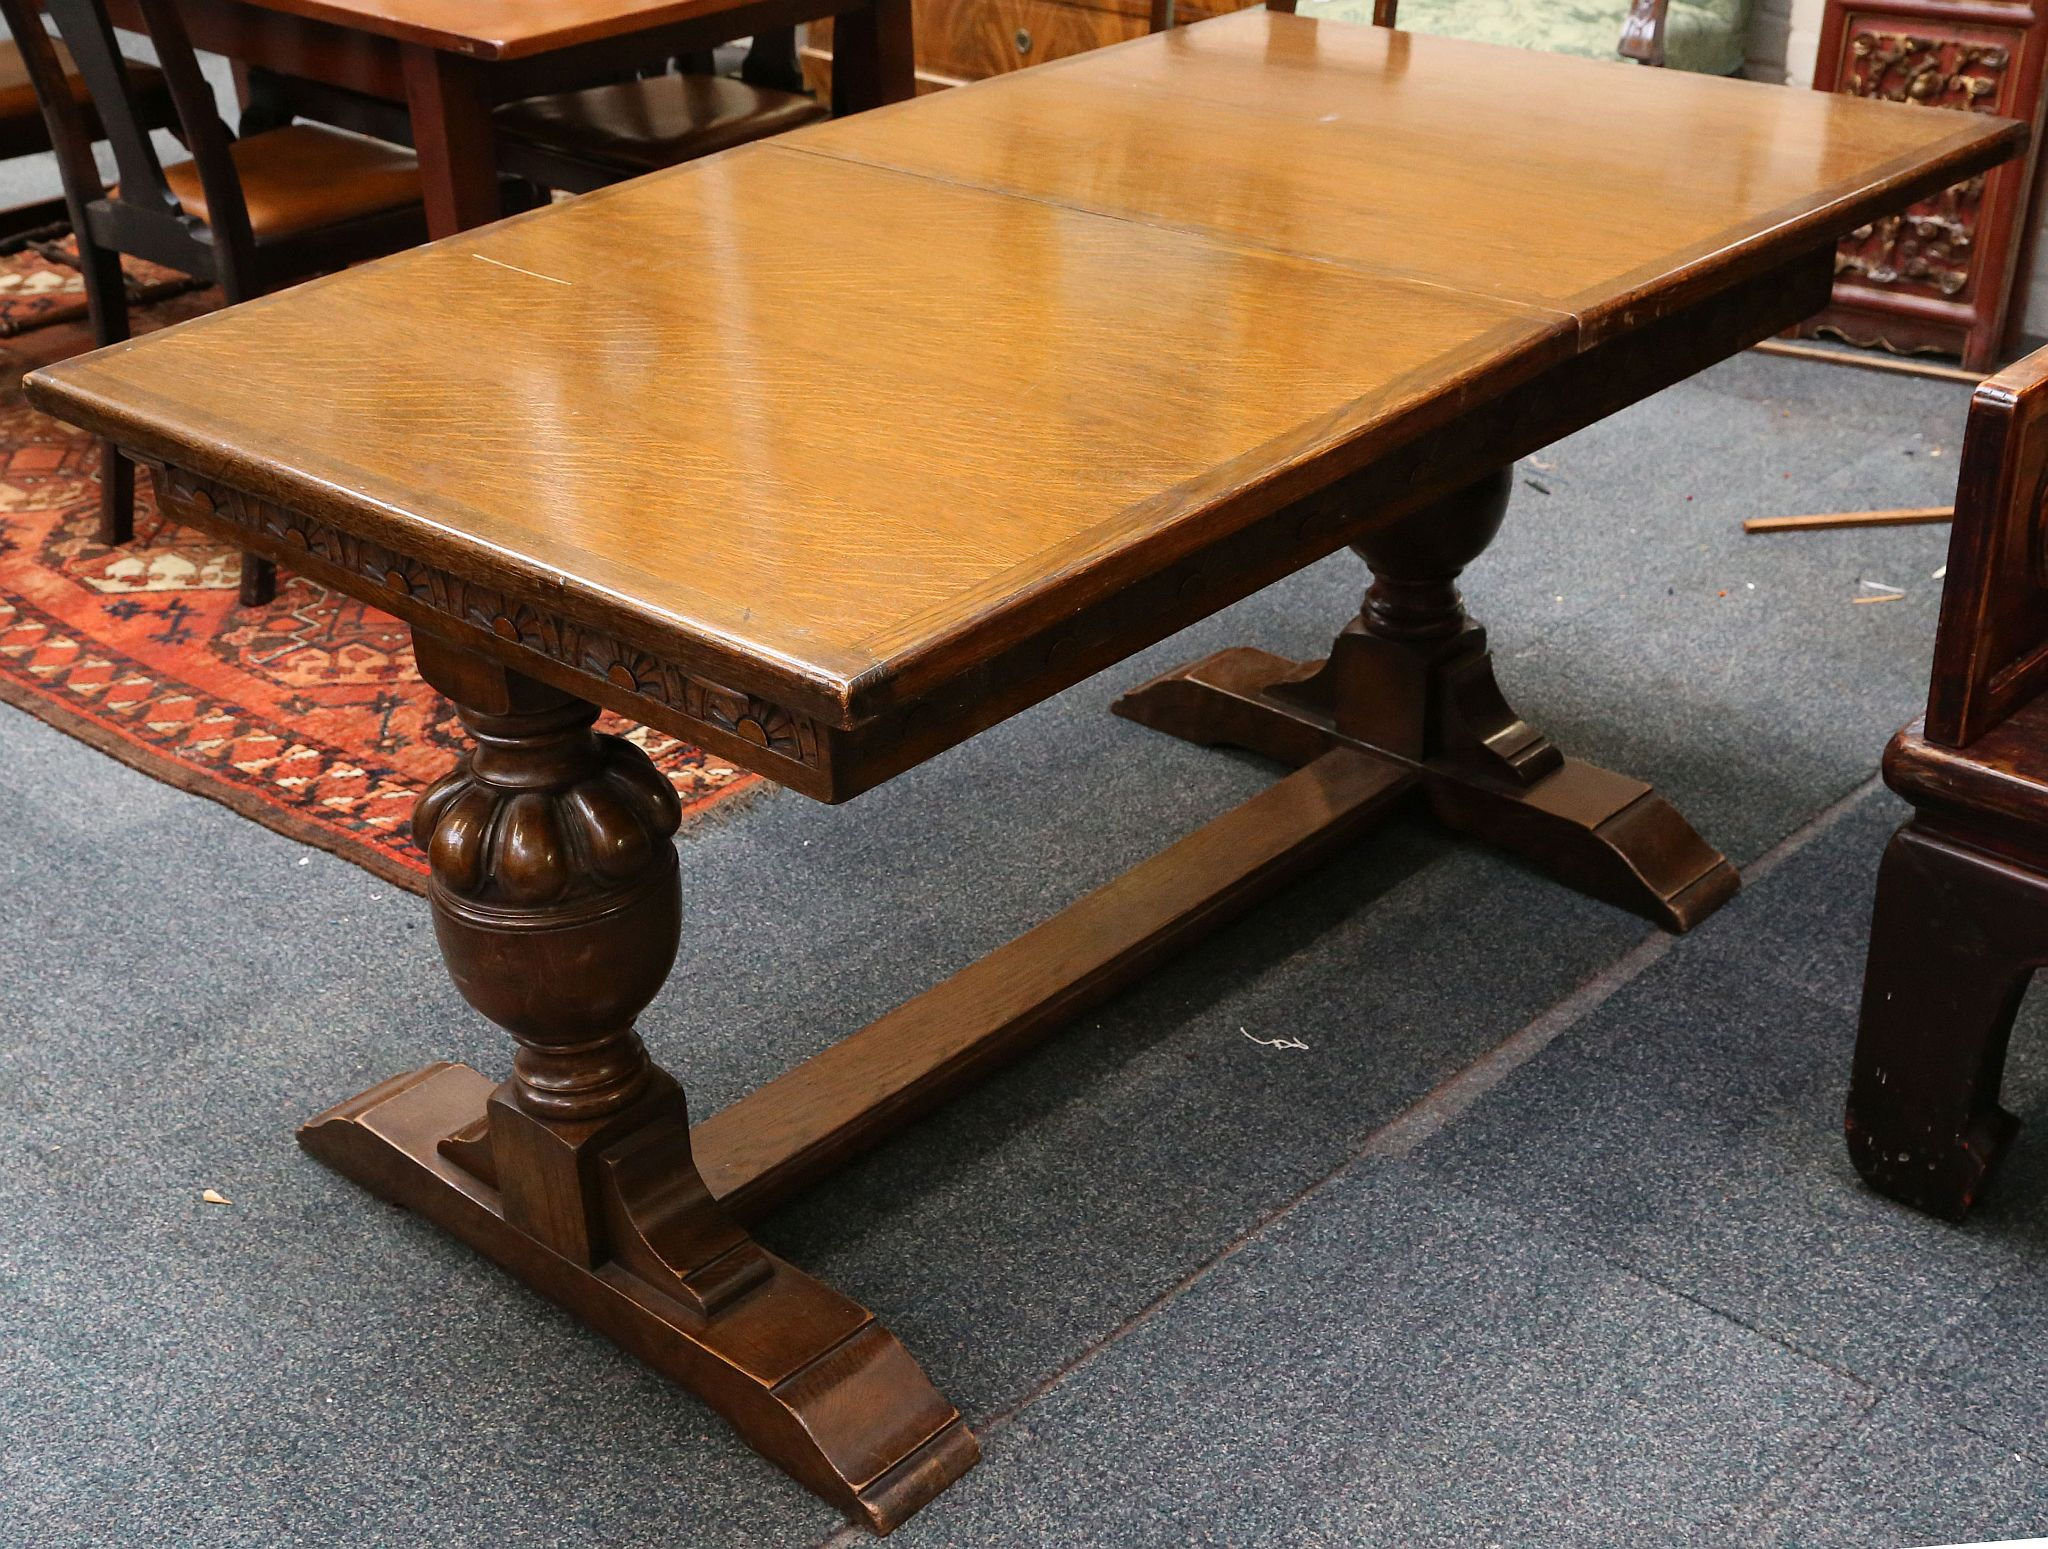 Lot 185 A 1940s Oak Extending Dining Table Blind Carved Supported On Heavy Turned